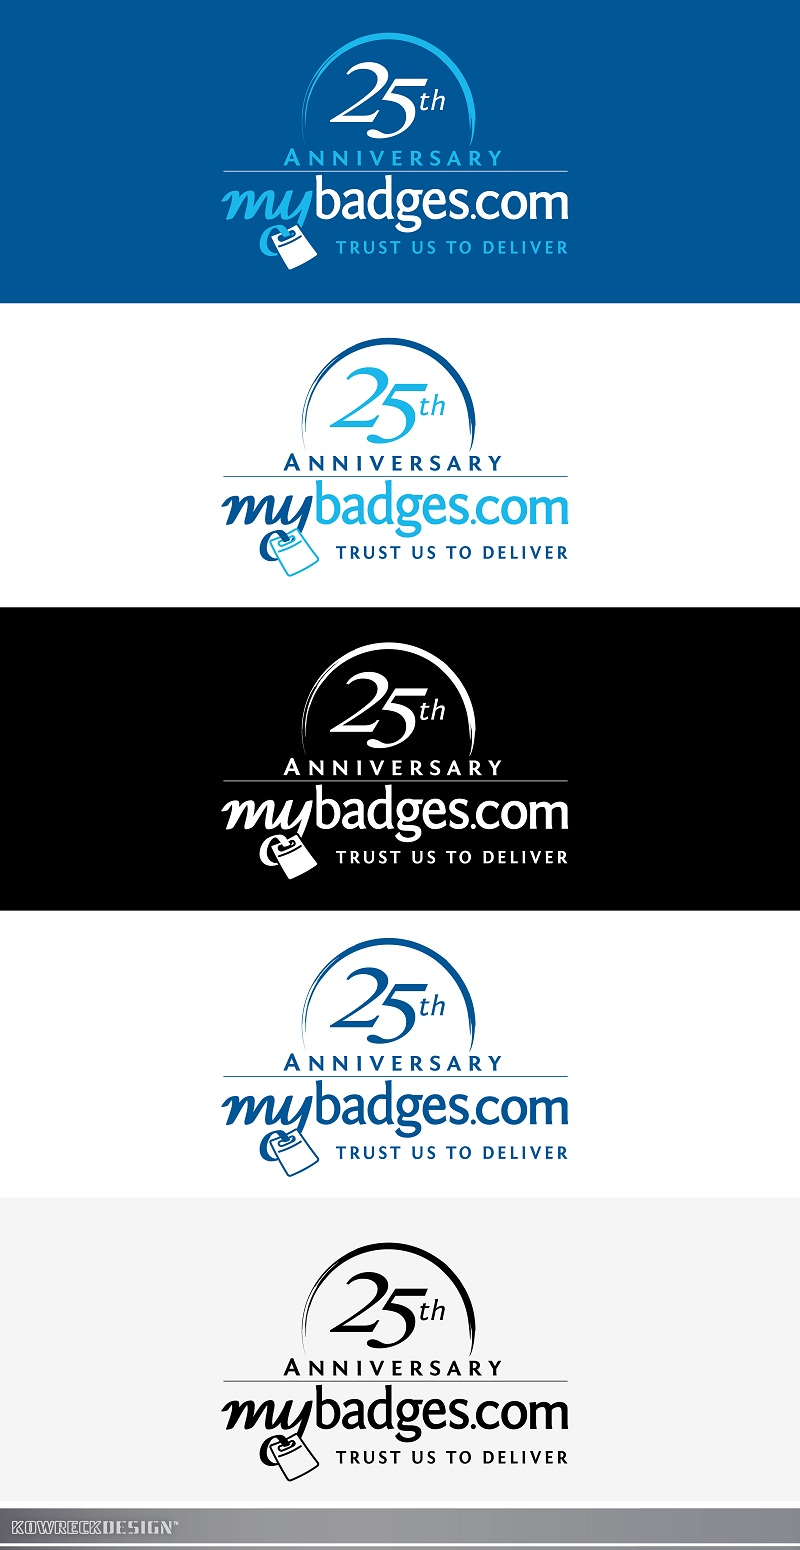 Logo Design by kowreck - Entry No. 132 in the Logo Design Contest 25th Anniversary Logo Design Wanted for MyBadges.com.